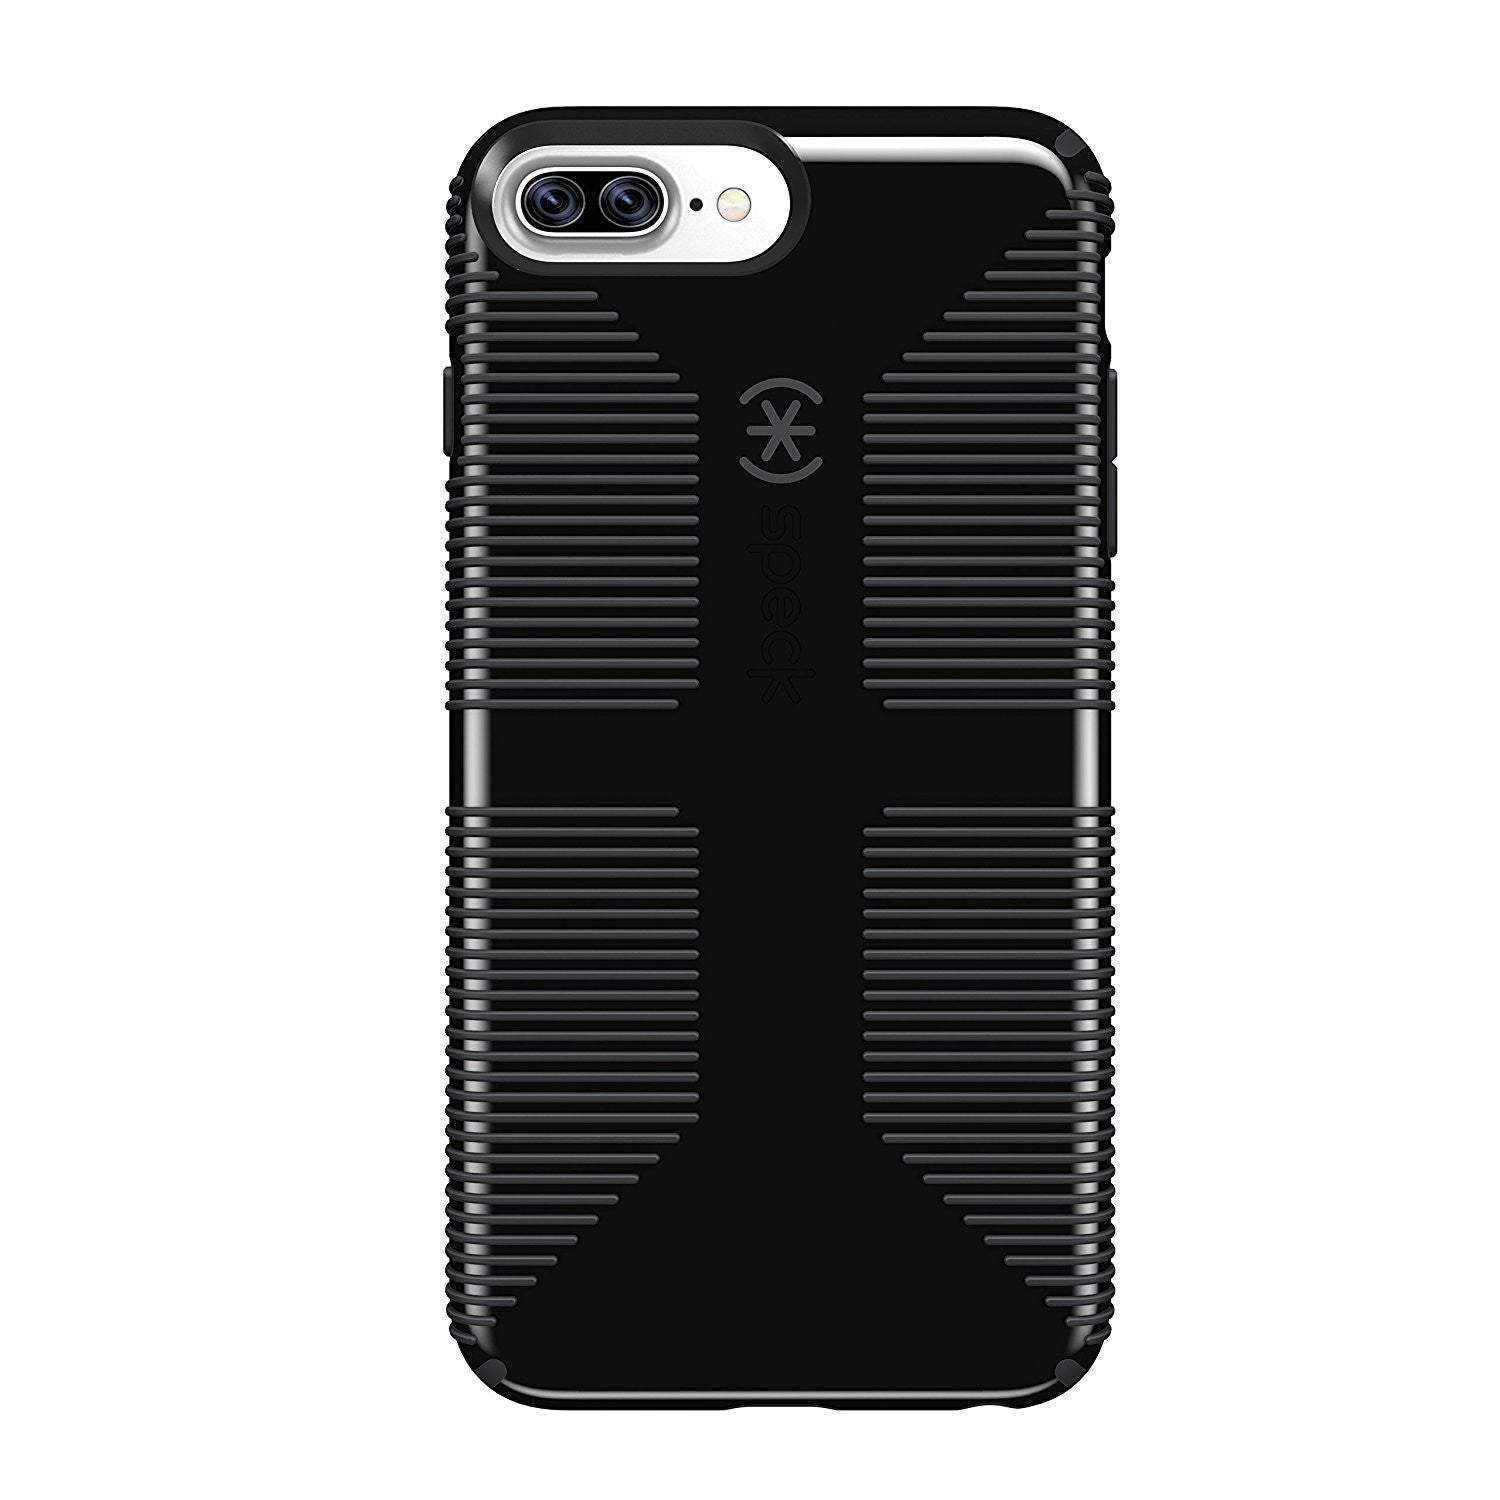 quality design caf15 eadd9 Speck - CandyShell Grip for iPhone 8 Plus / 7 Plus / 6s Plus / 6 Plus